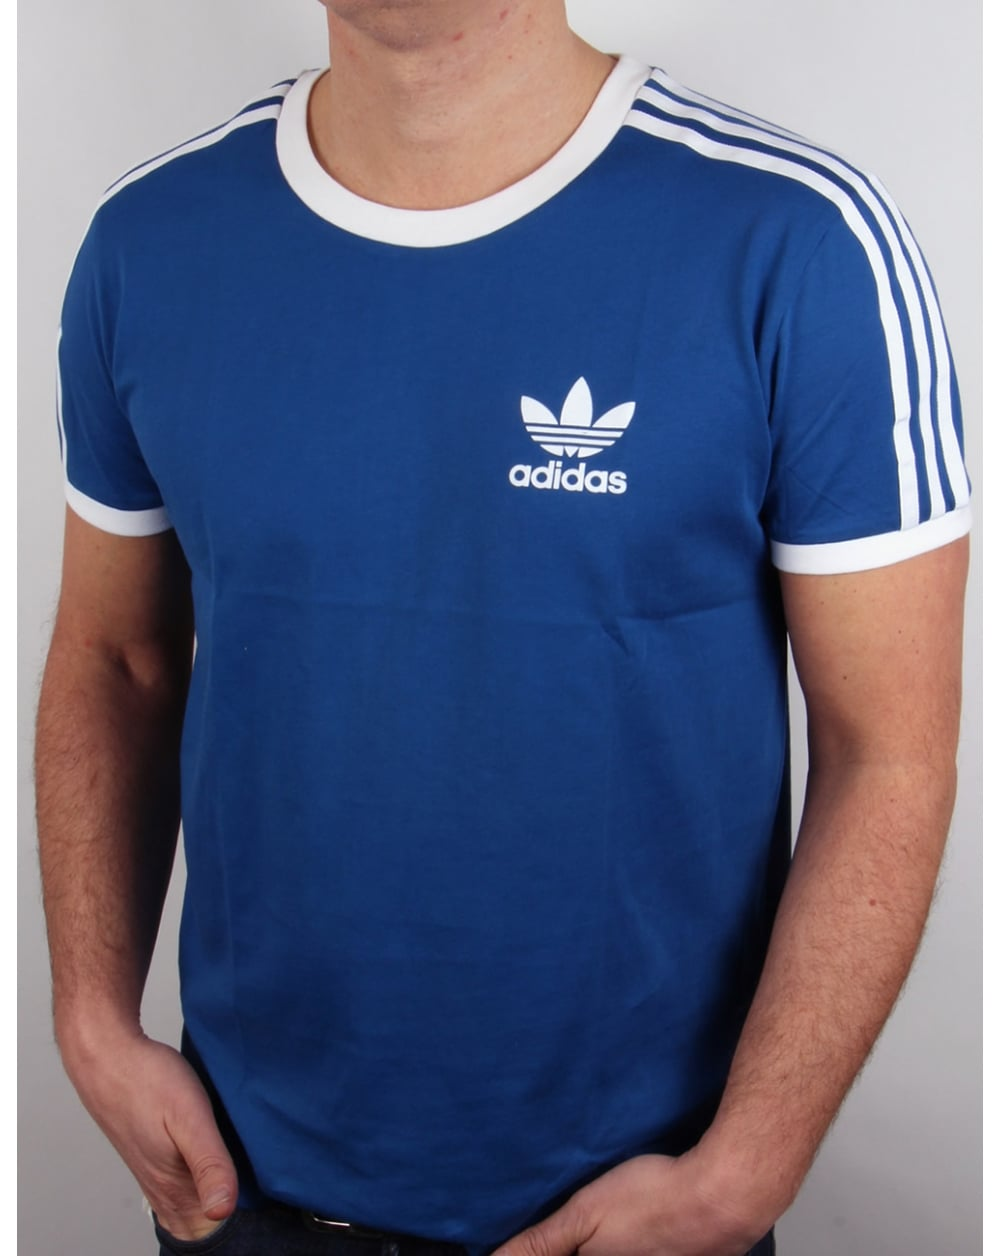 adidas originals retro 3 stripes t shirt adidas blue california trefoil tee. Black Bedroom Furniture Sets. Home Design Ideas